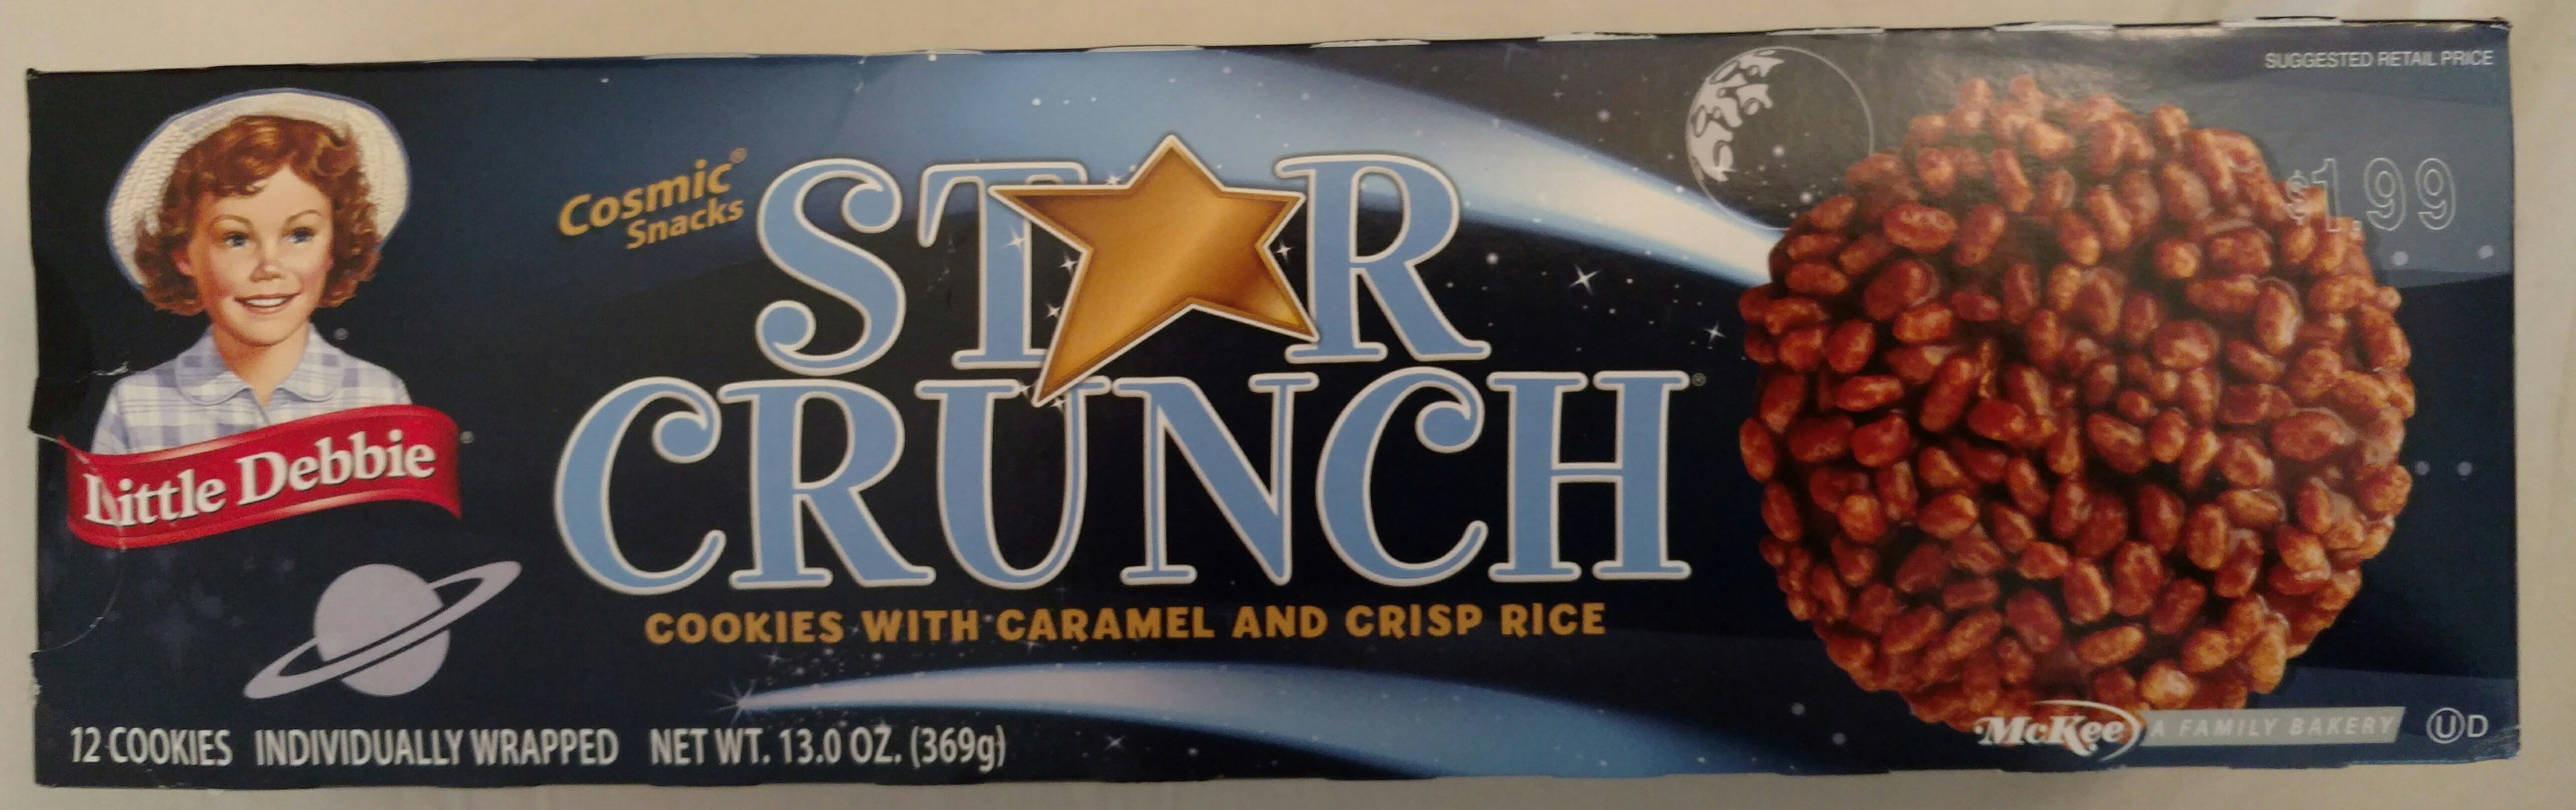 Cosmic snacks cookies with caramel and crisp rice - Product - en